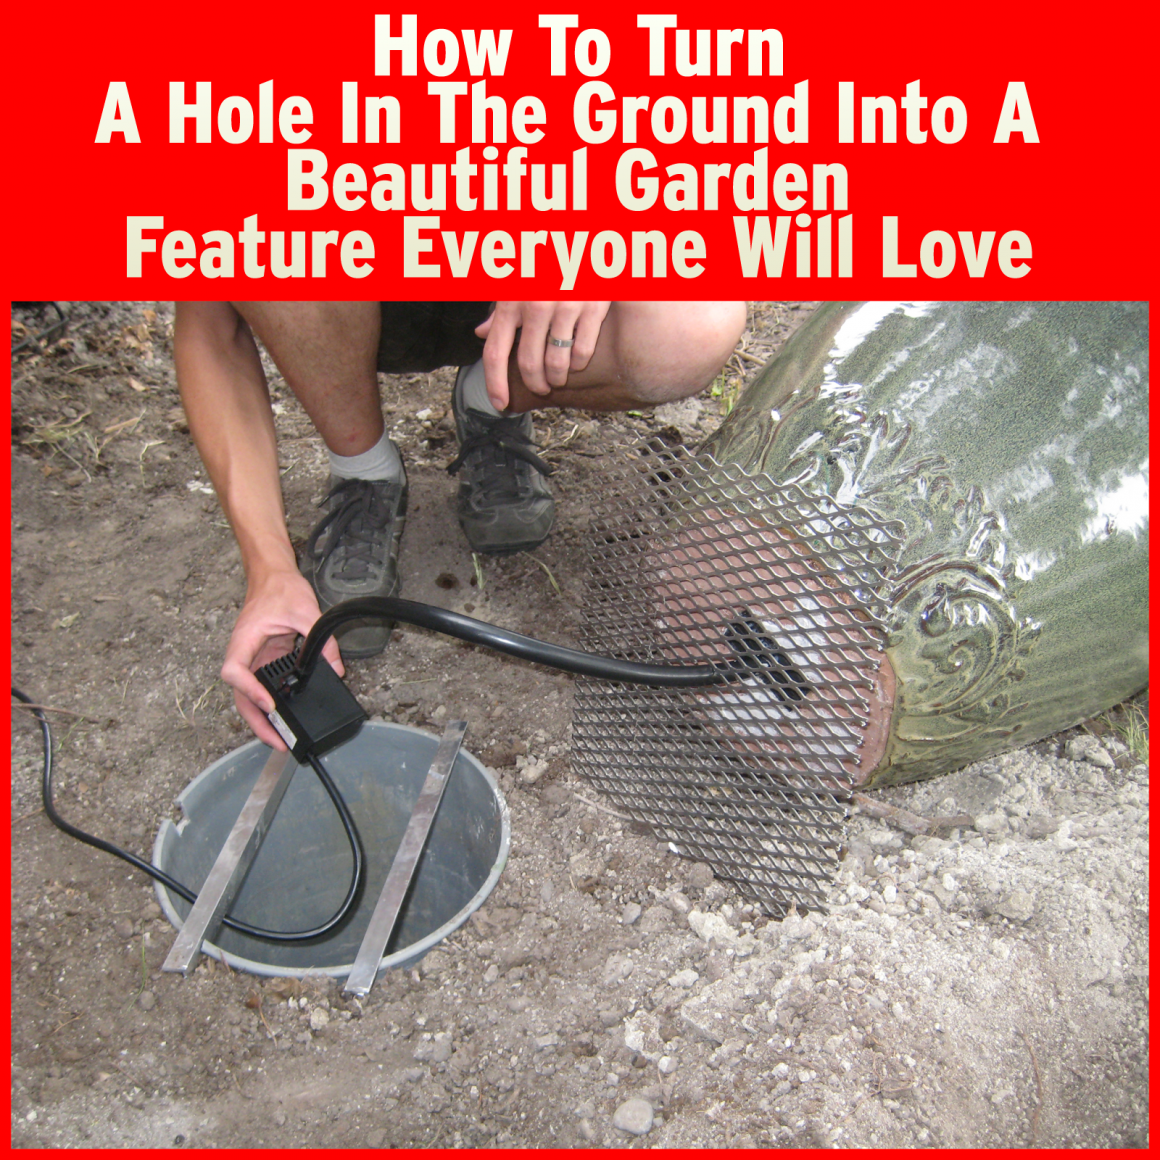 How To Turn A Hole In The Ground Into A Beautiful Garden Feature Everyone Will Love